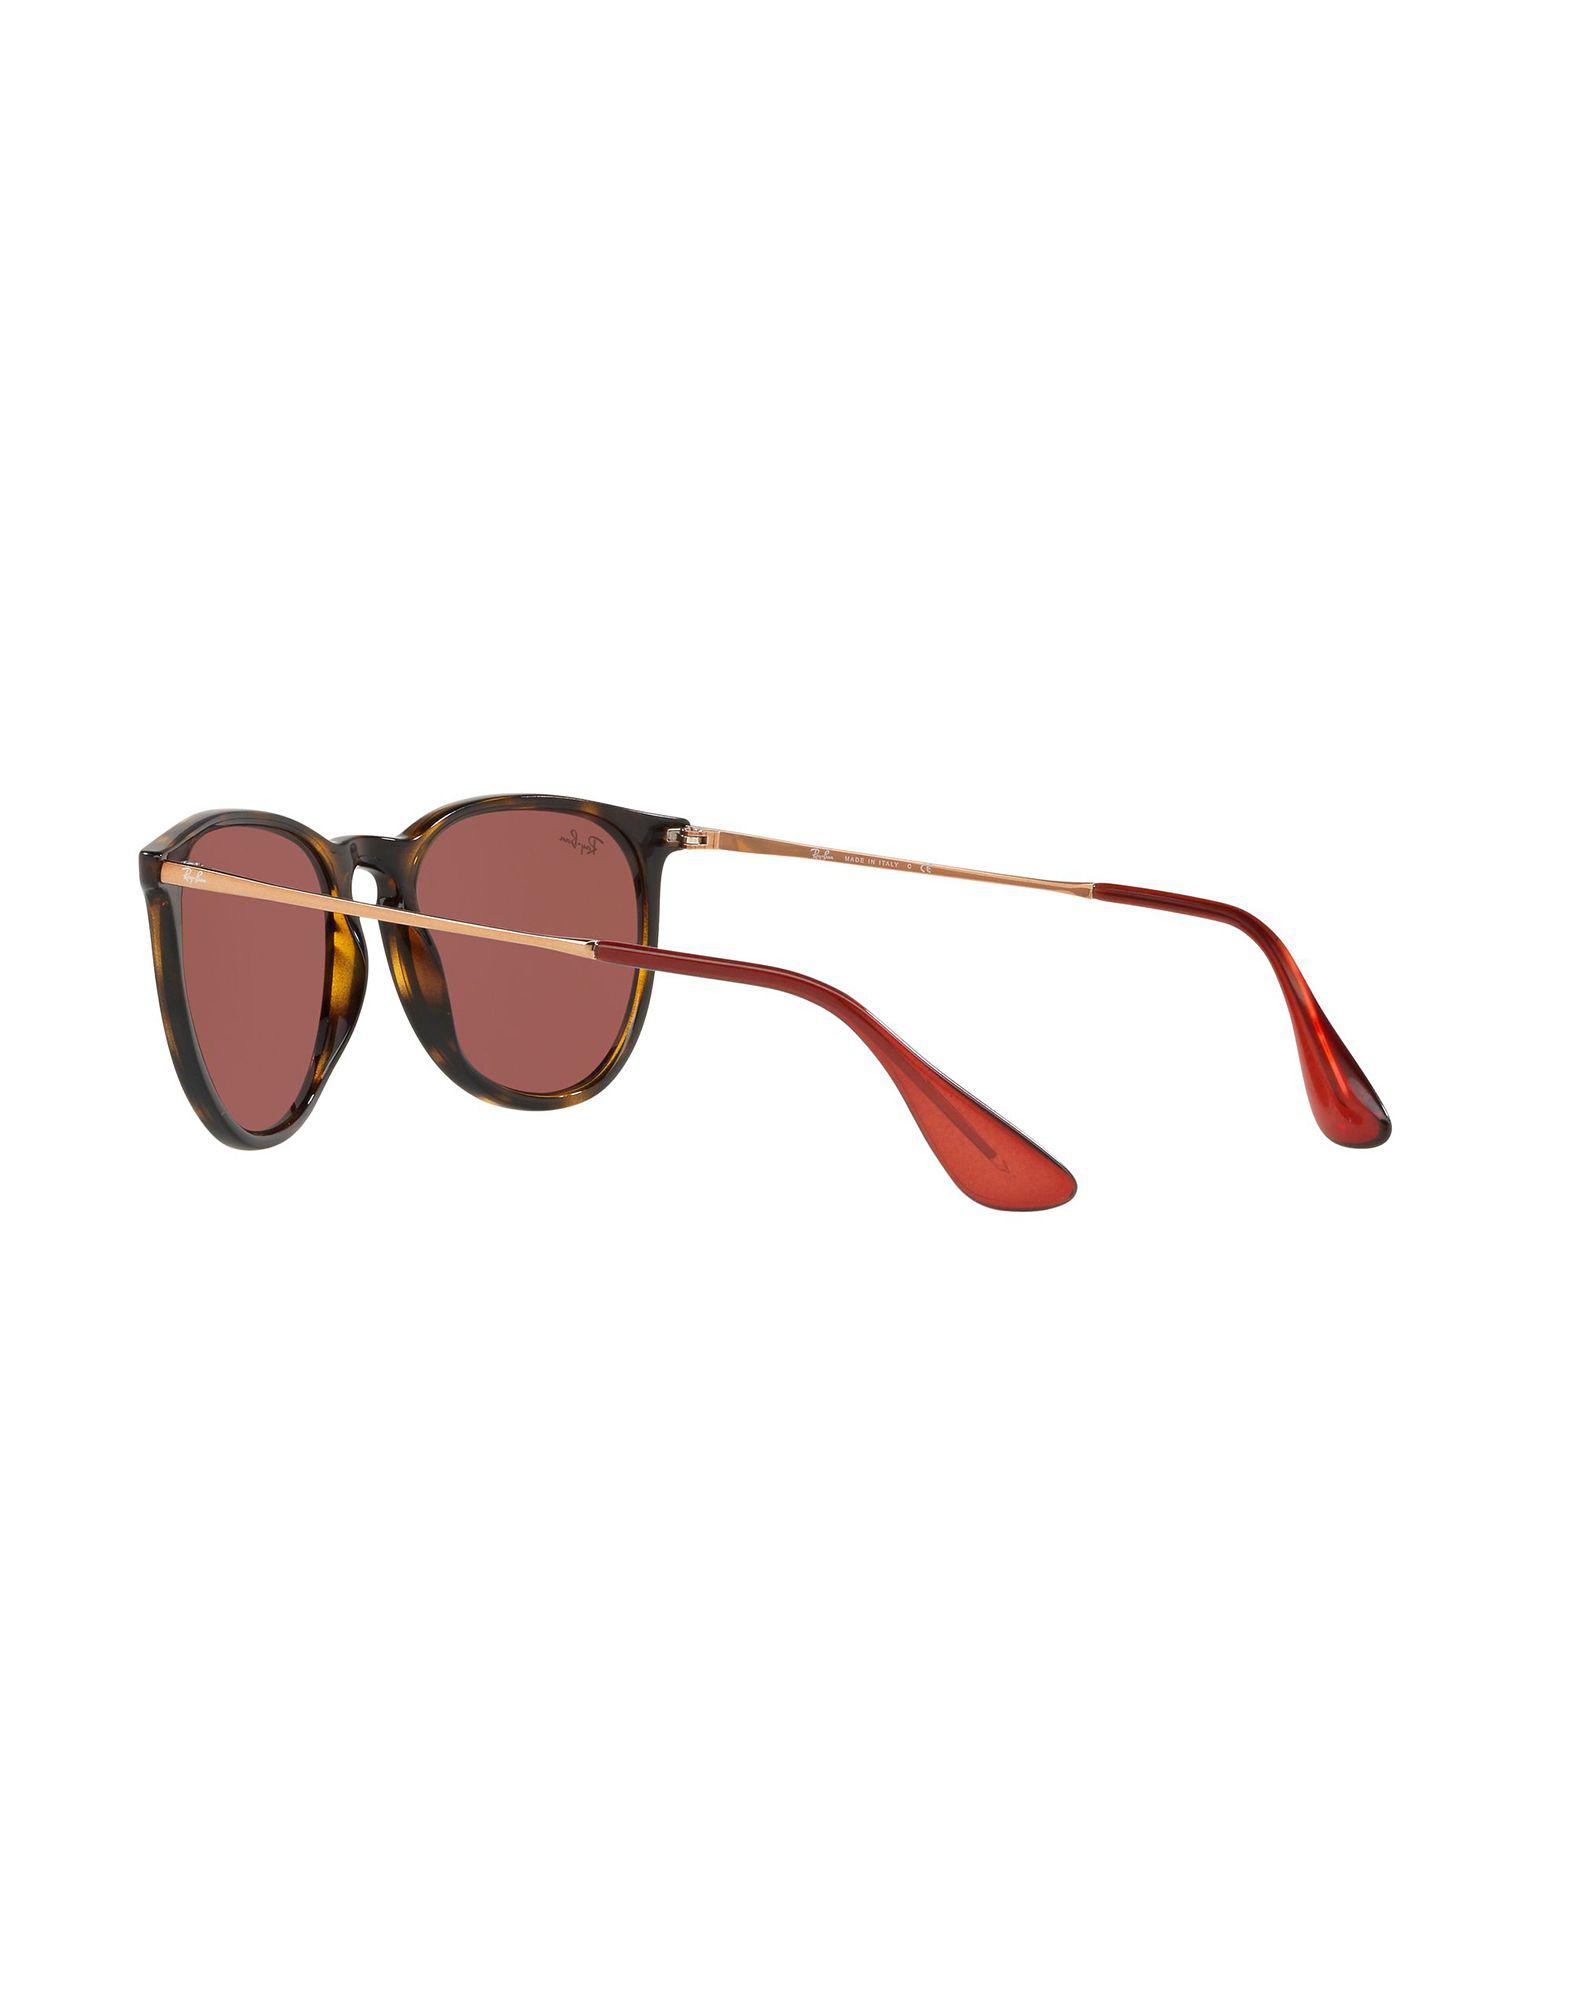 Ray-Ban Synthetic Sunglasses in Dark Brown (Brown)